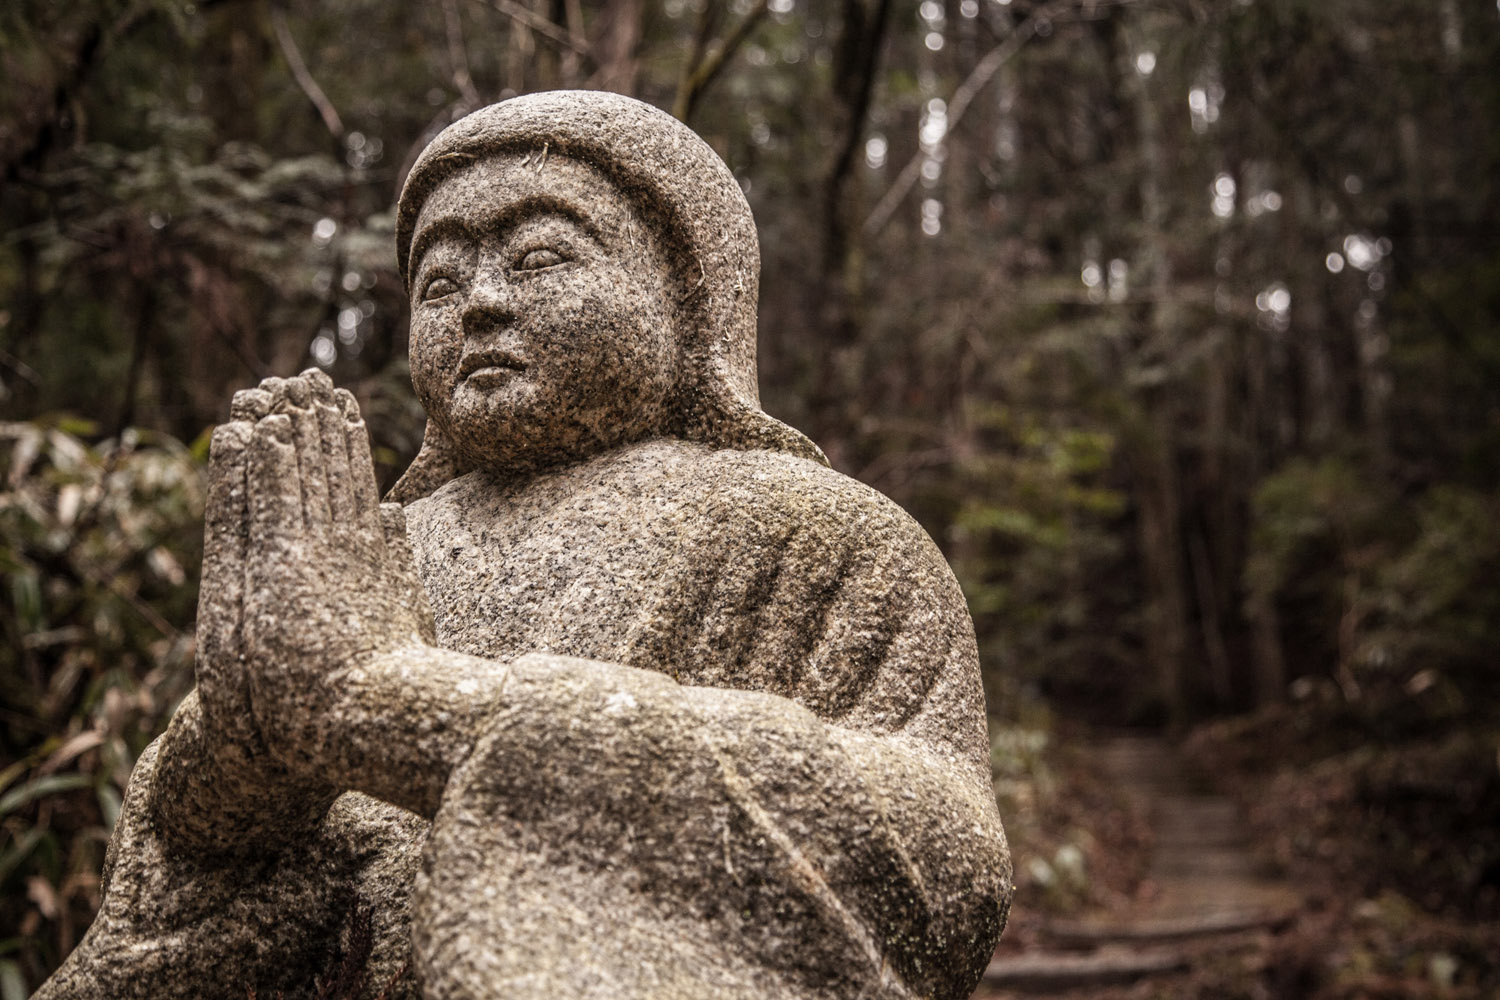 'Guardian of the Pathway' – Okunoin, Wakayama Prefecture